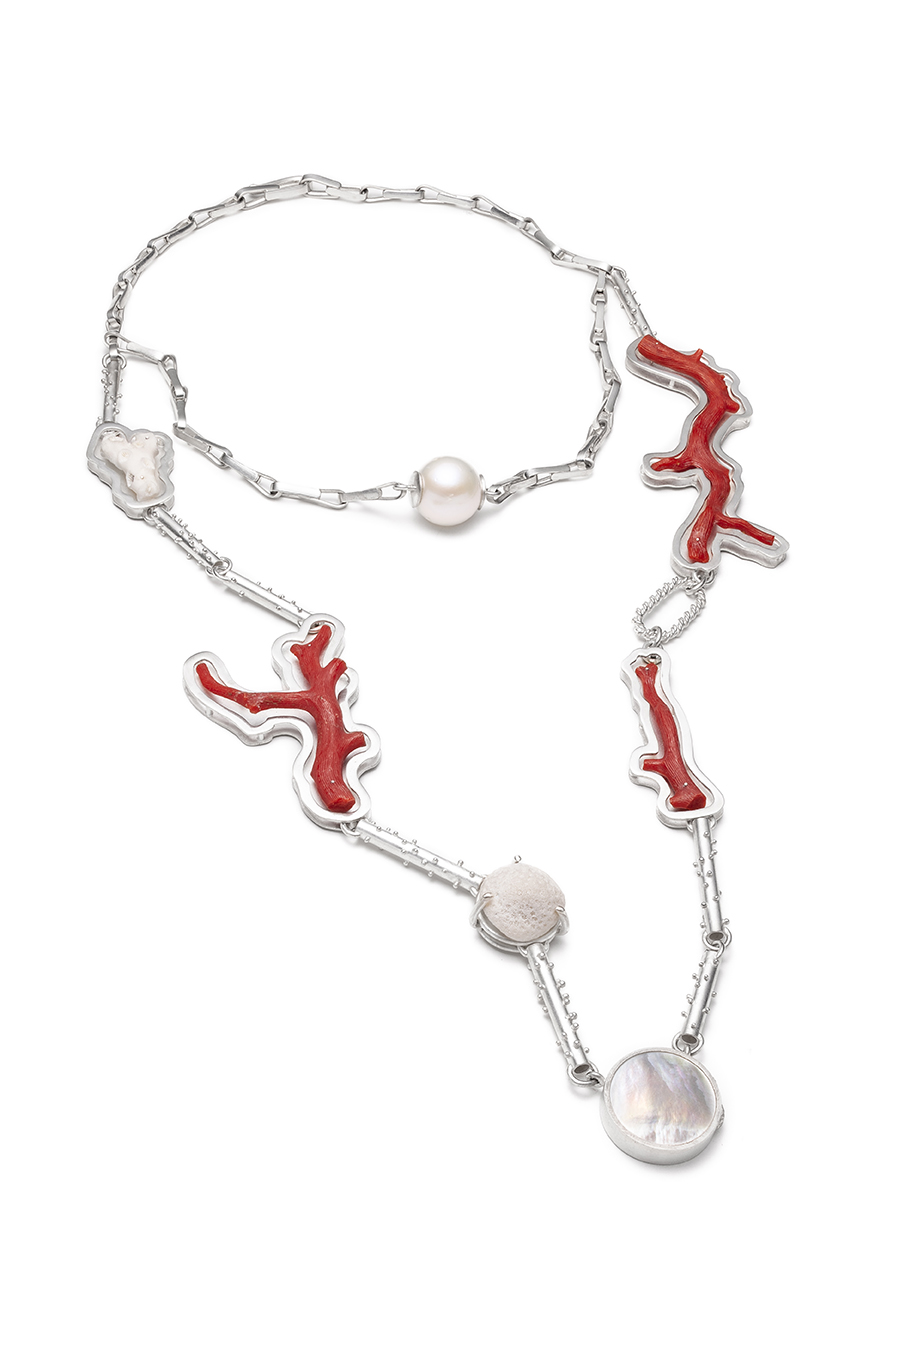 Maeva Lacombe Untitled (2019) Sterling silver, coral, mother of pearl Image by Anthony McLean